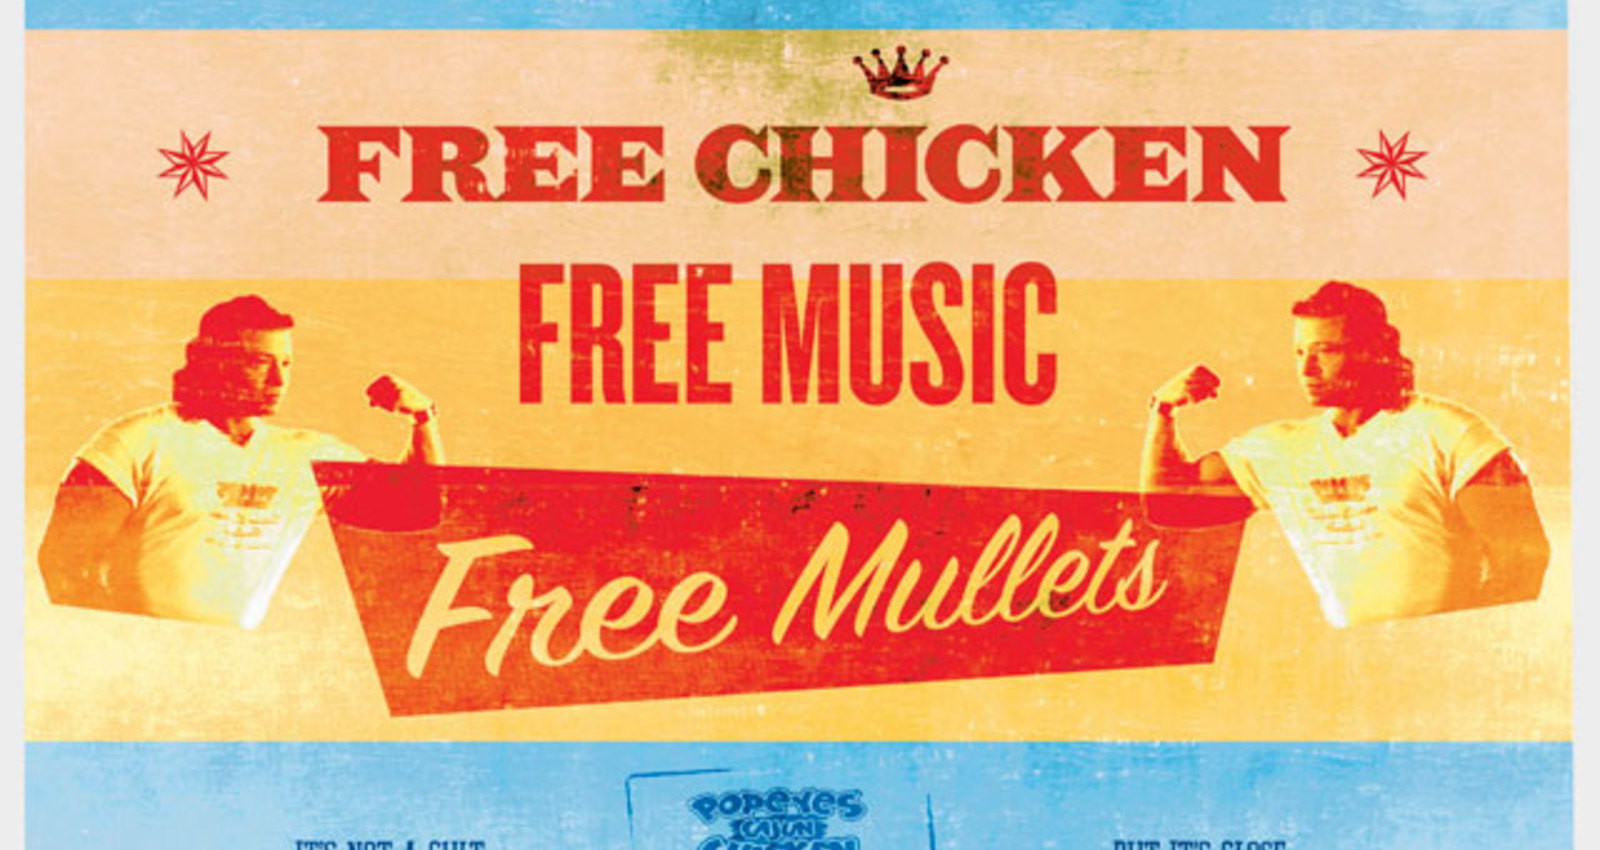 Free Mullets, Fried Food Diet, Mardi Gras, Thighs, Thousands